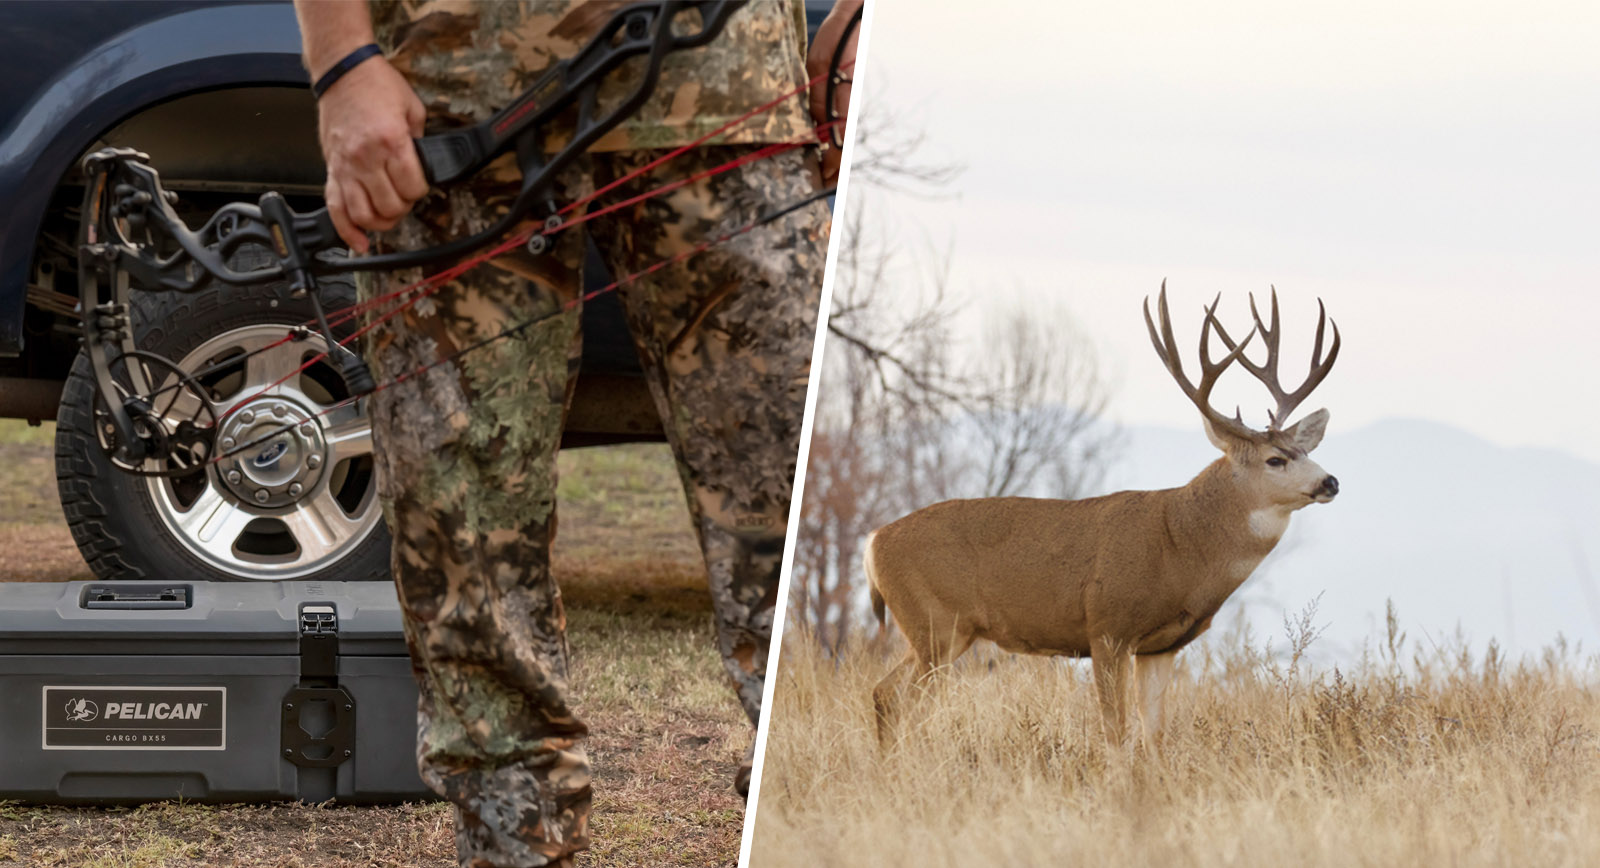 pelican consumer blog cargo case bow deer hunting